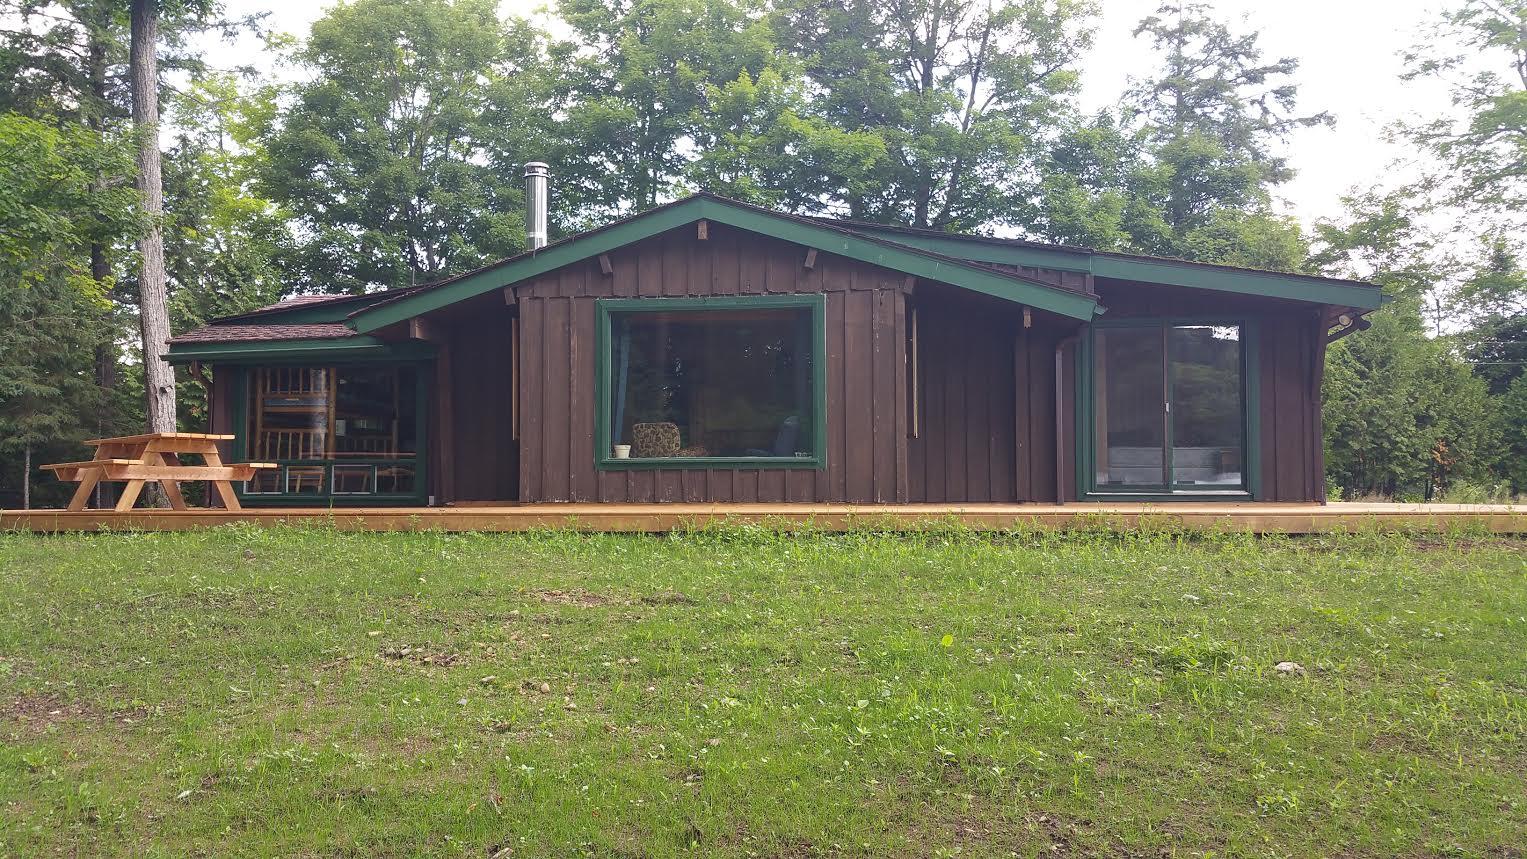 Family cottages limberlost forest and wildlife reserve for Family cottages